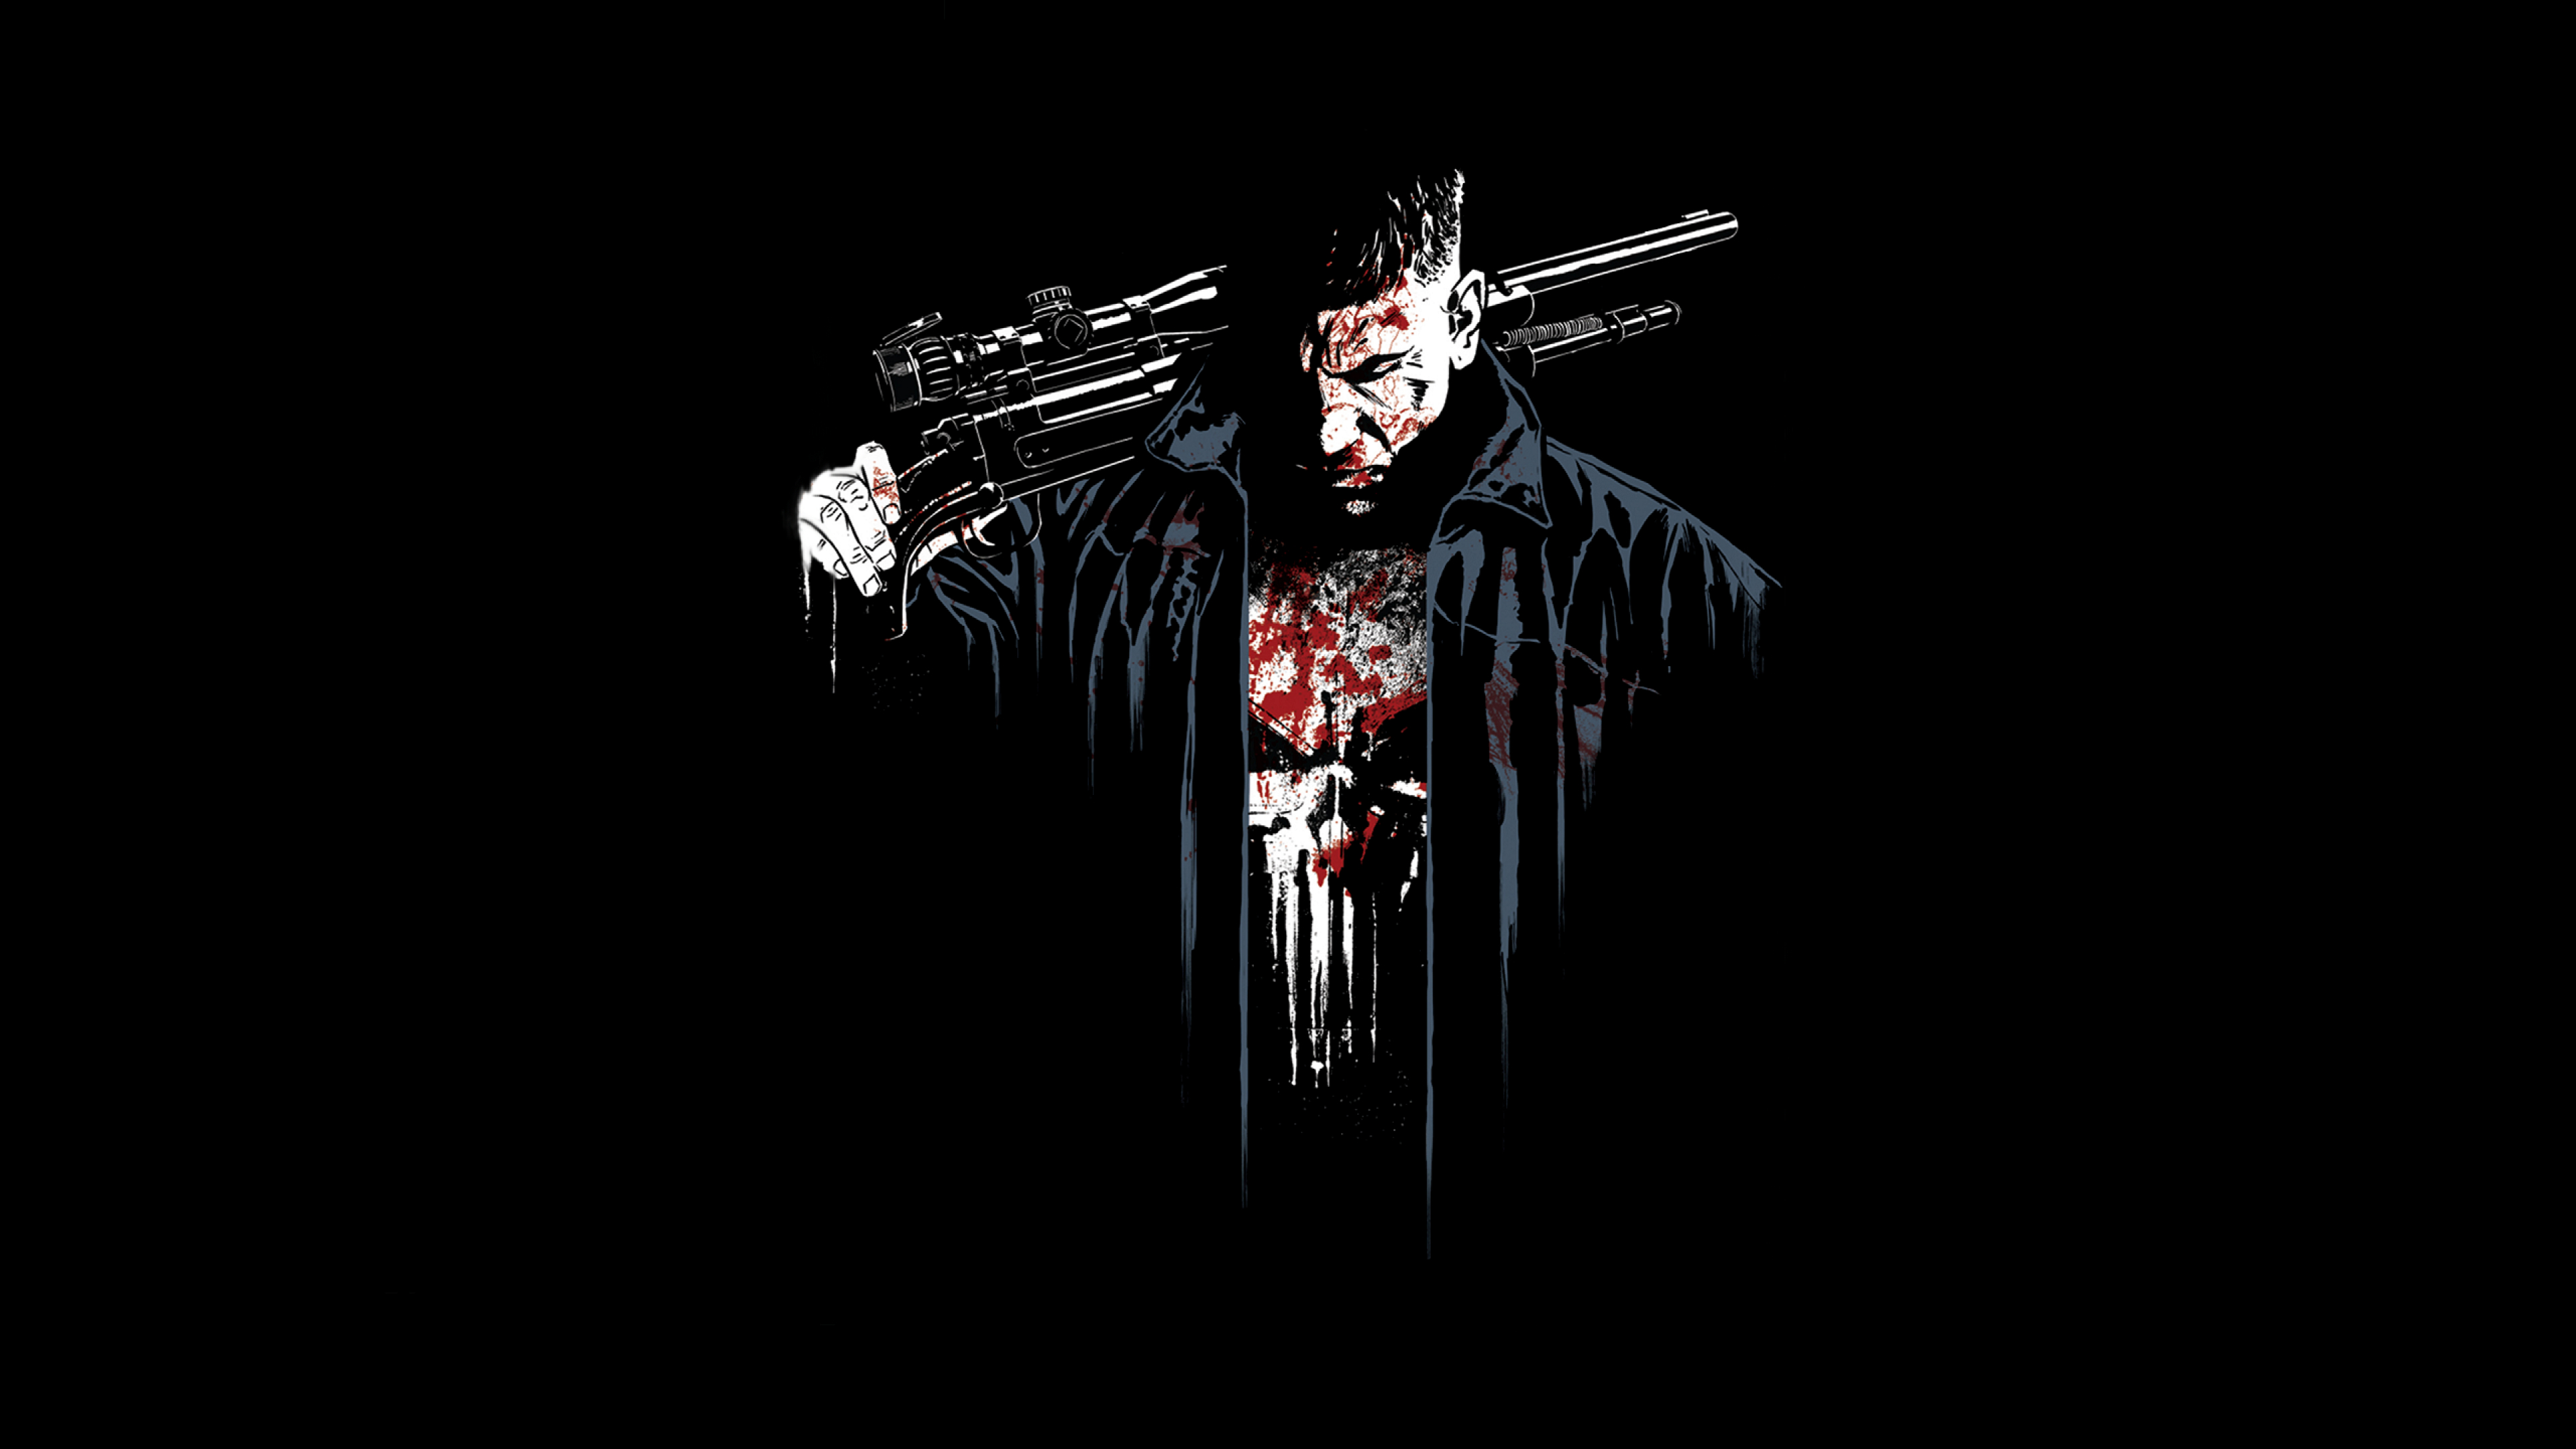 Netflix The Punisher Jon Bernthal Art Full Hd 2k Wallpaper